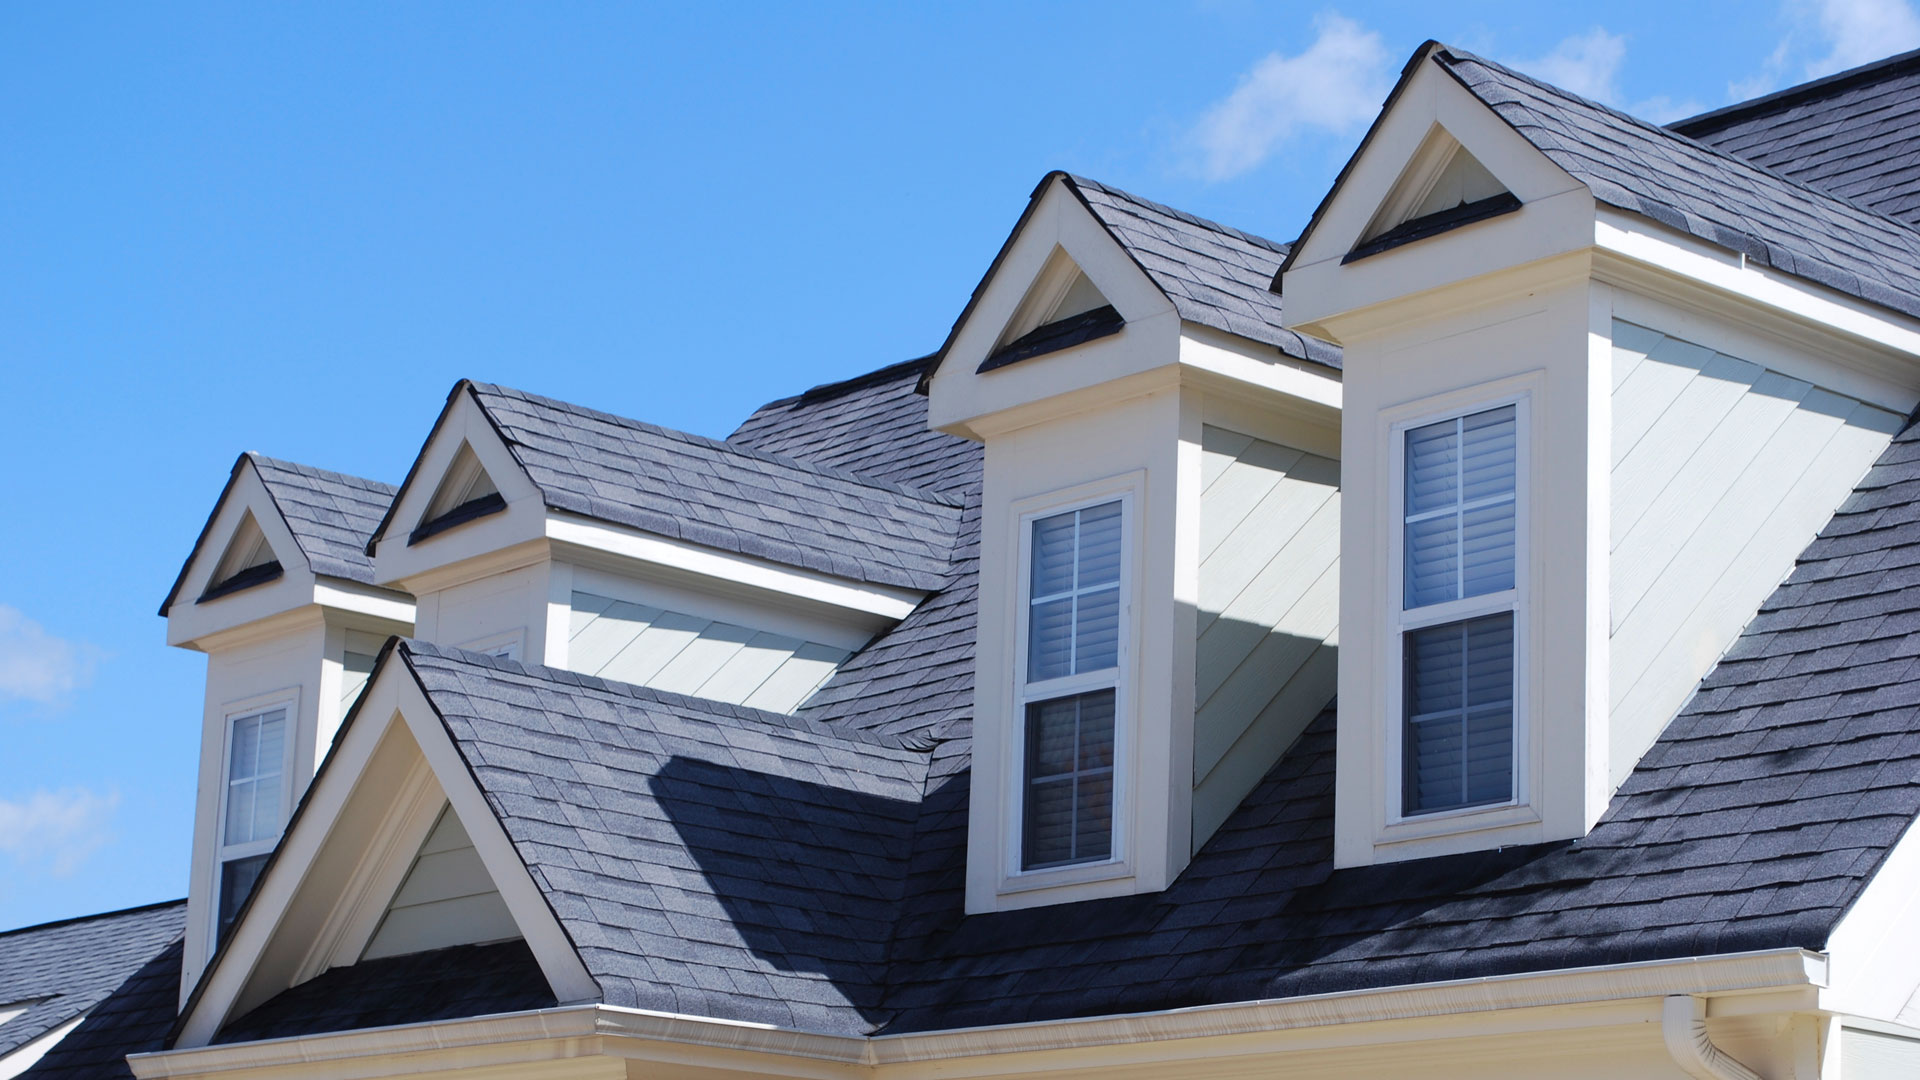 Folding Arm Awnings Provide Deep Down Support and Protection to The House